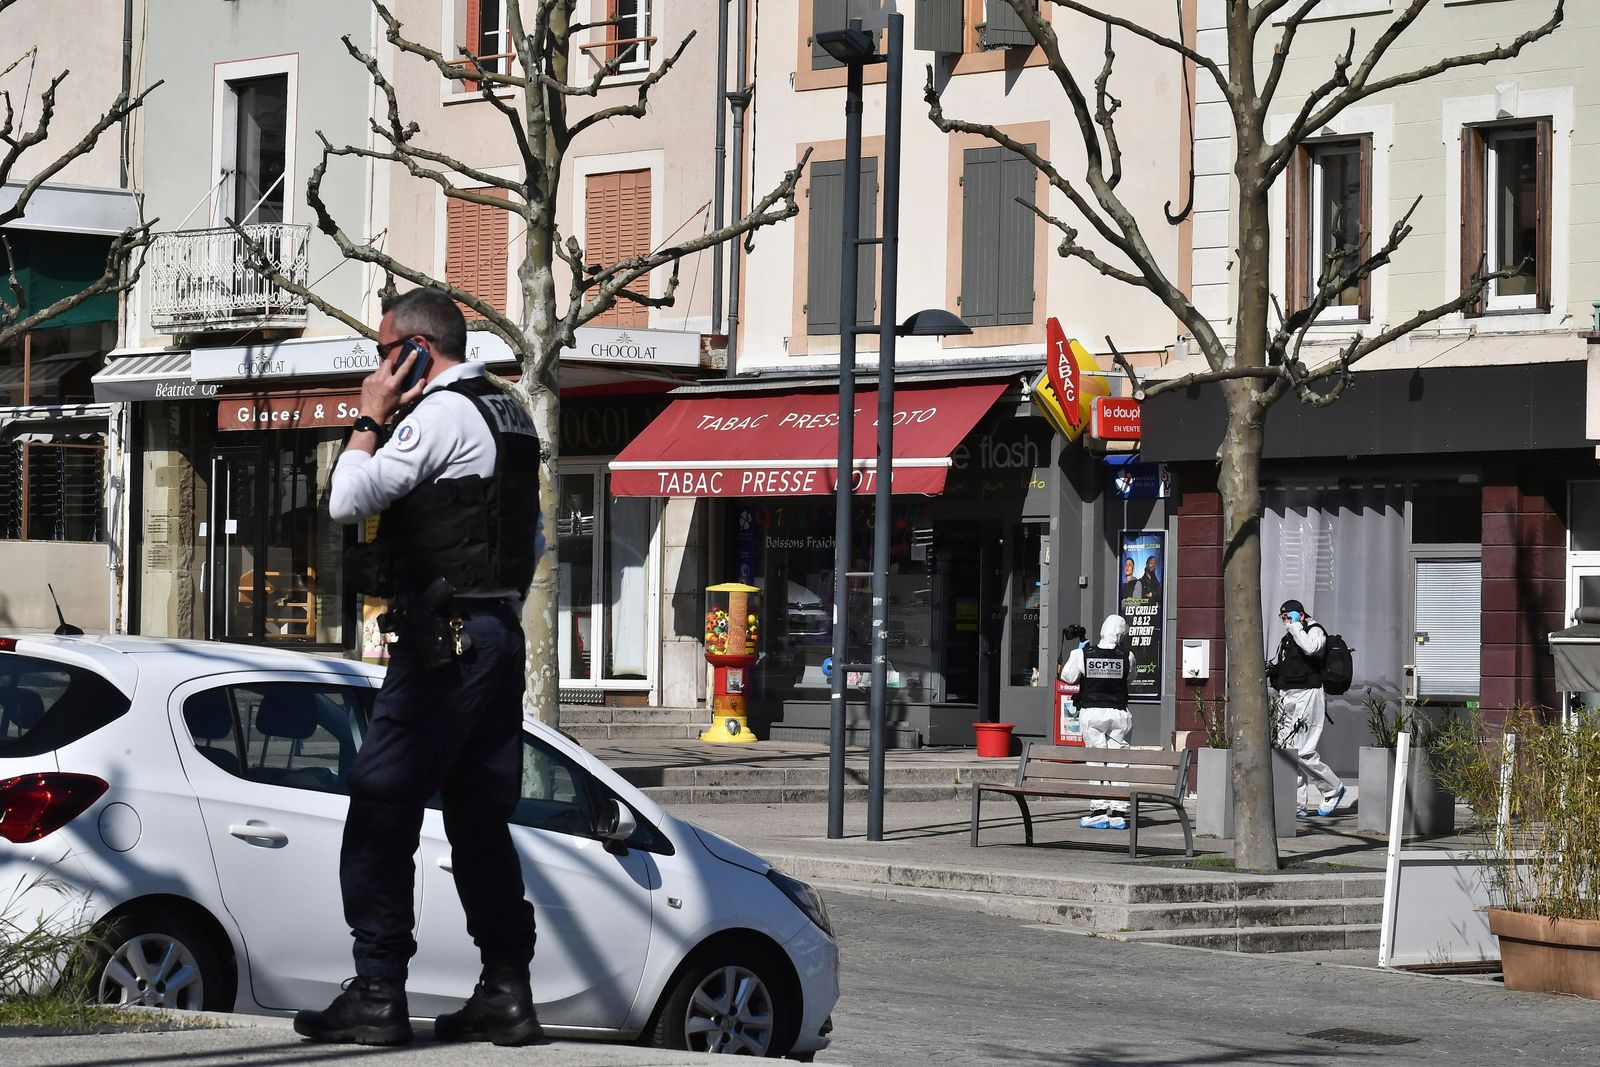 A police officer gives a phone call after a man wielding a knife attacked residents venturing out to shop in the town under lockdown, Saturday April 4, 2020 in Romans-sur-Isere, southern France. (AP Photo)